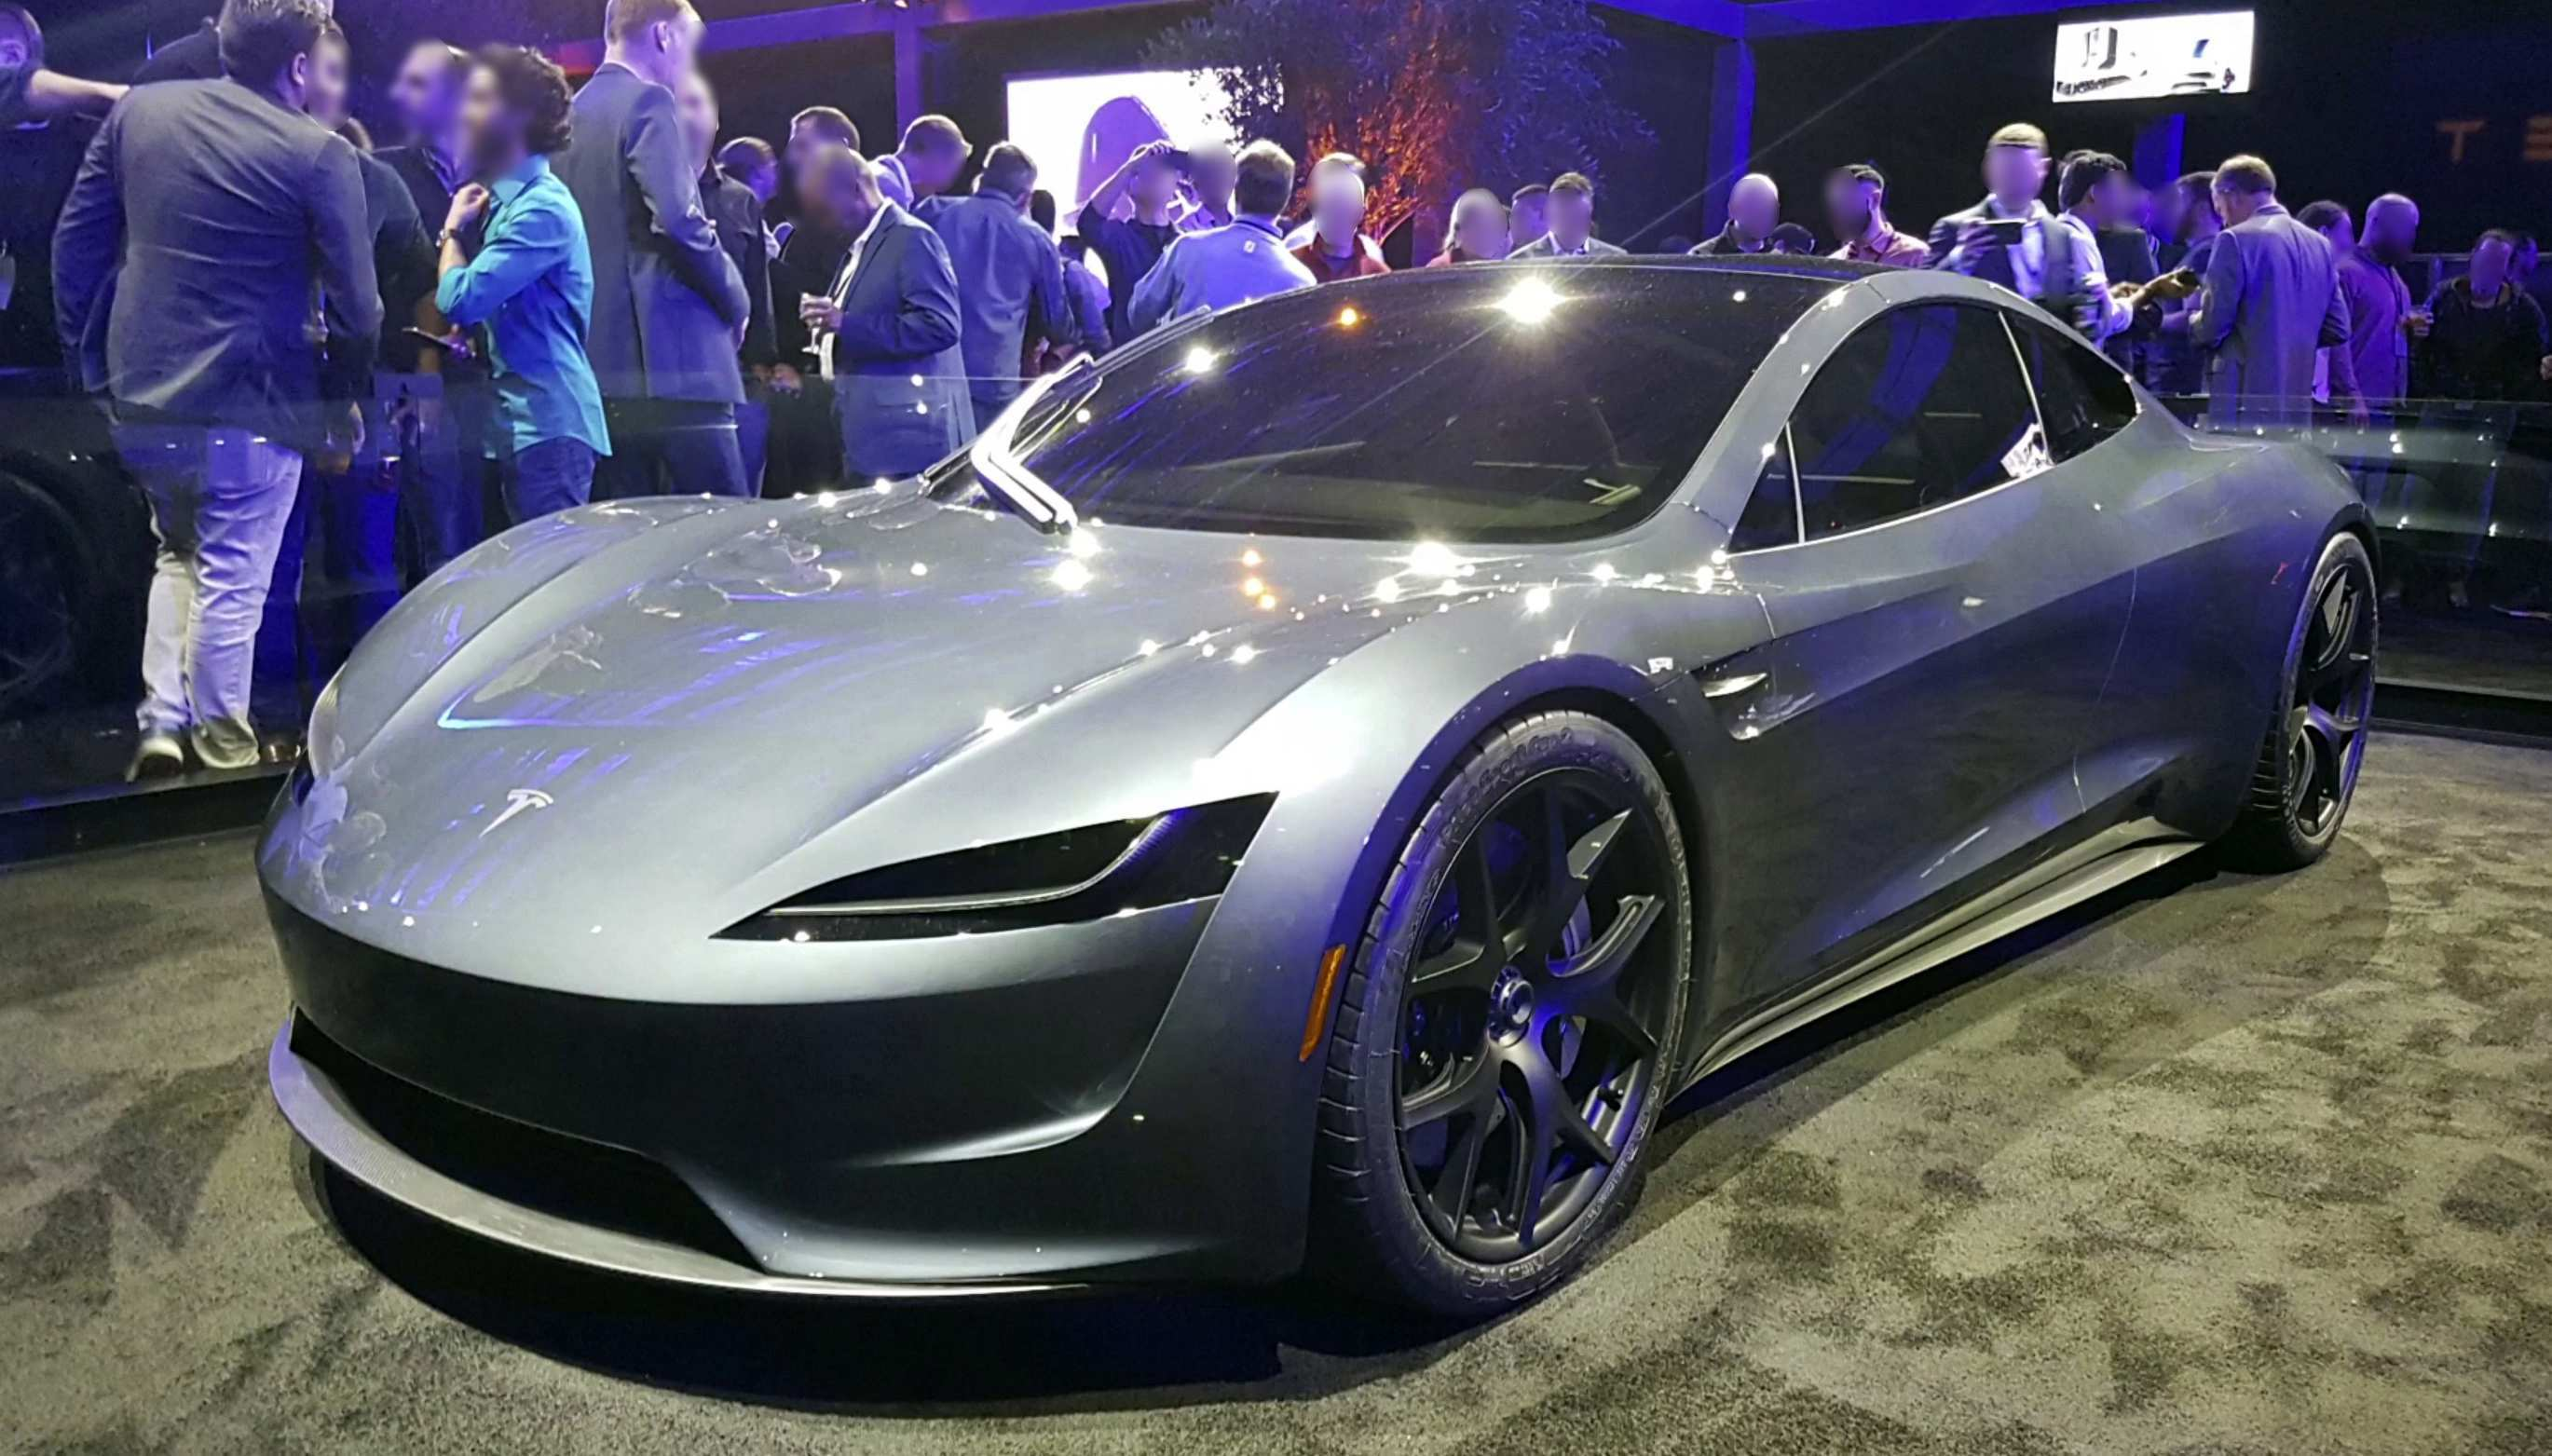 81 Great 2020 Tesla Roadster 0 60 Price and Review by 2020 Tesla Roadster 0 60